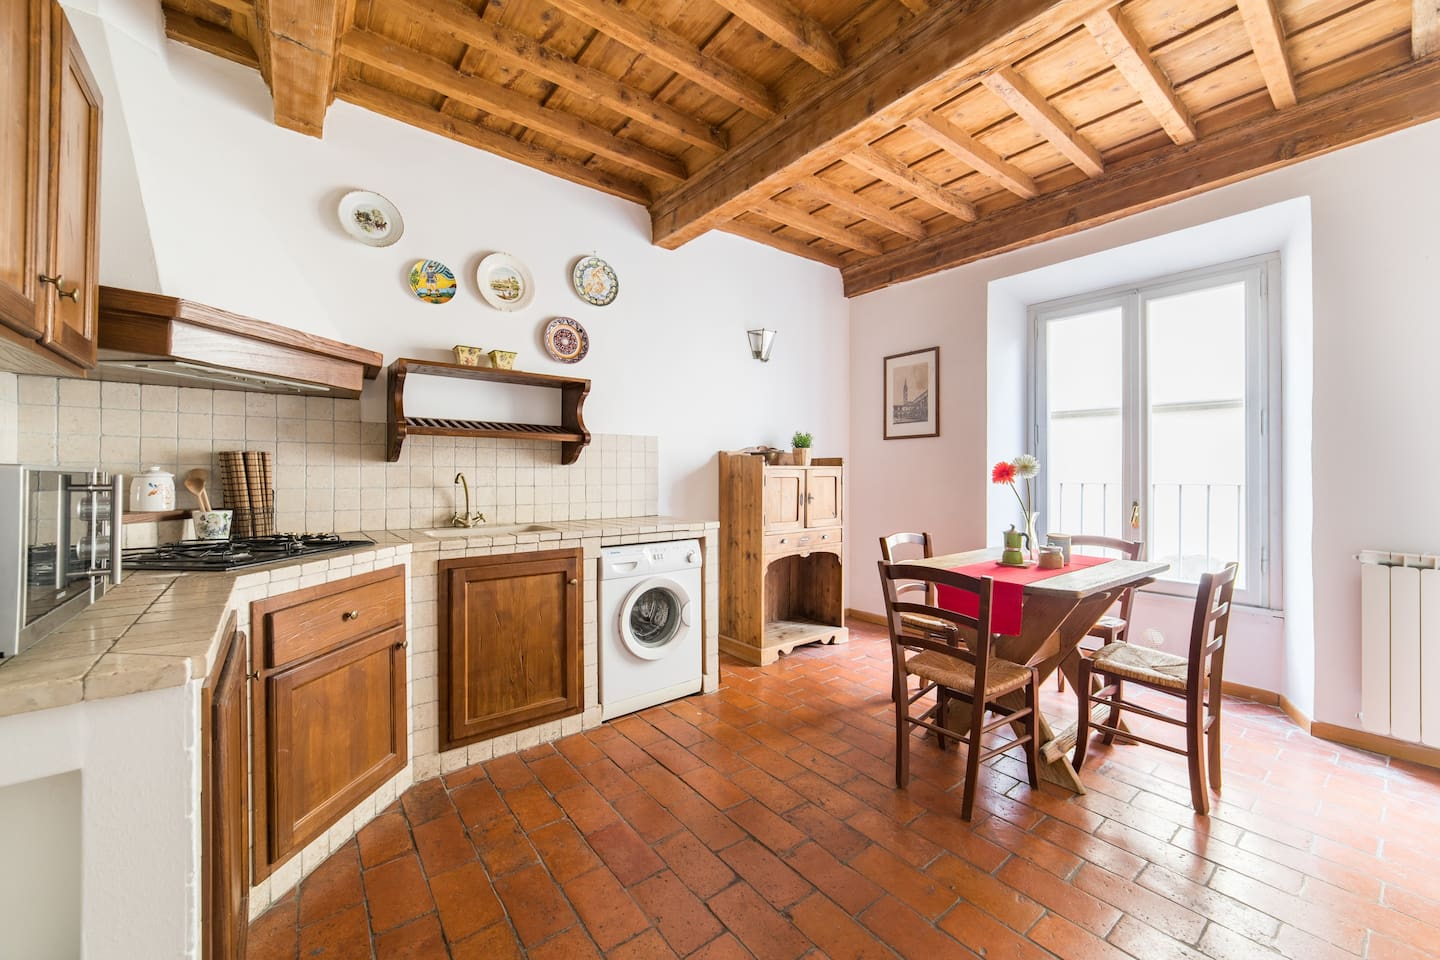 The cosy and fully furnished kitchen